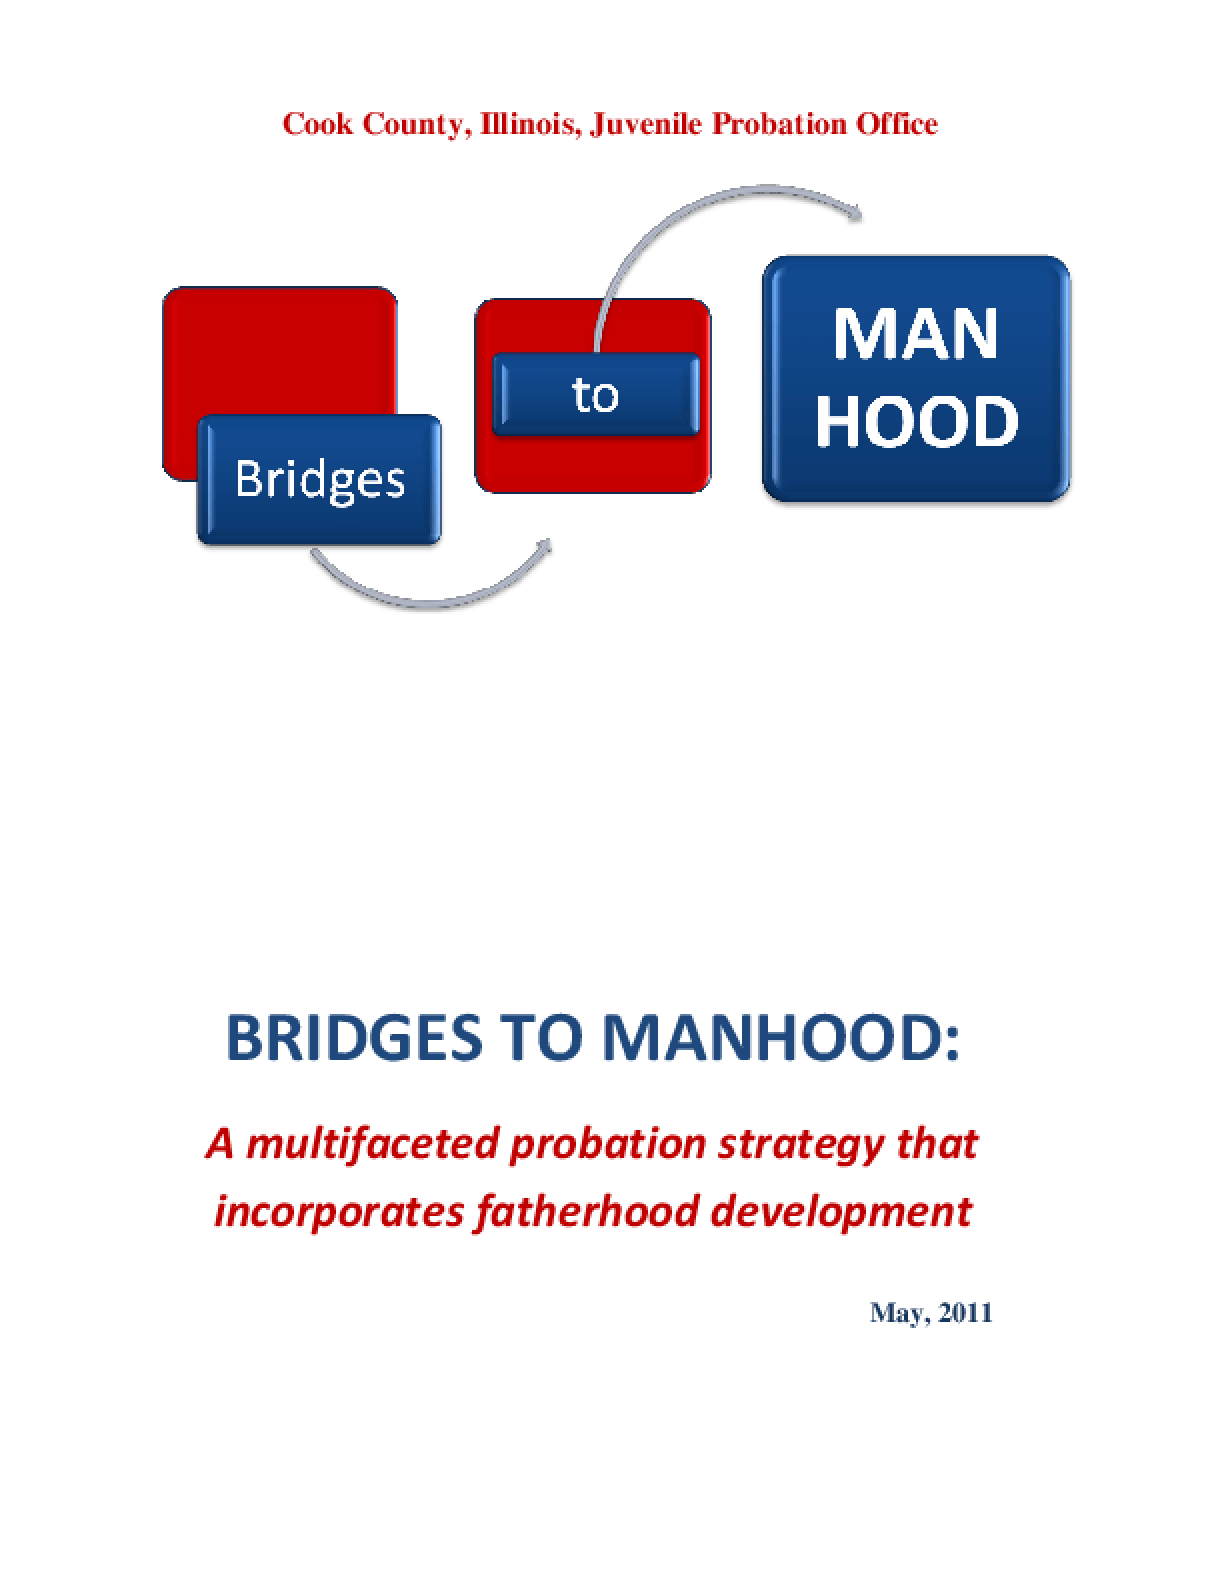 Bridges to Manhood: A Multifaceted Probation Strategy That Incorporates Fatherhood Development